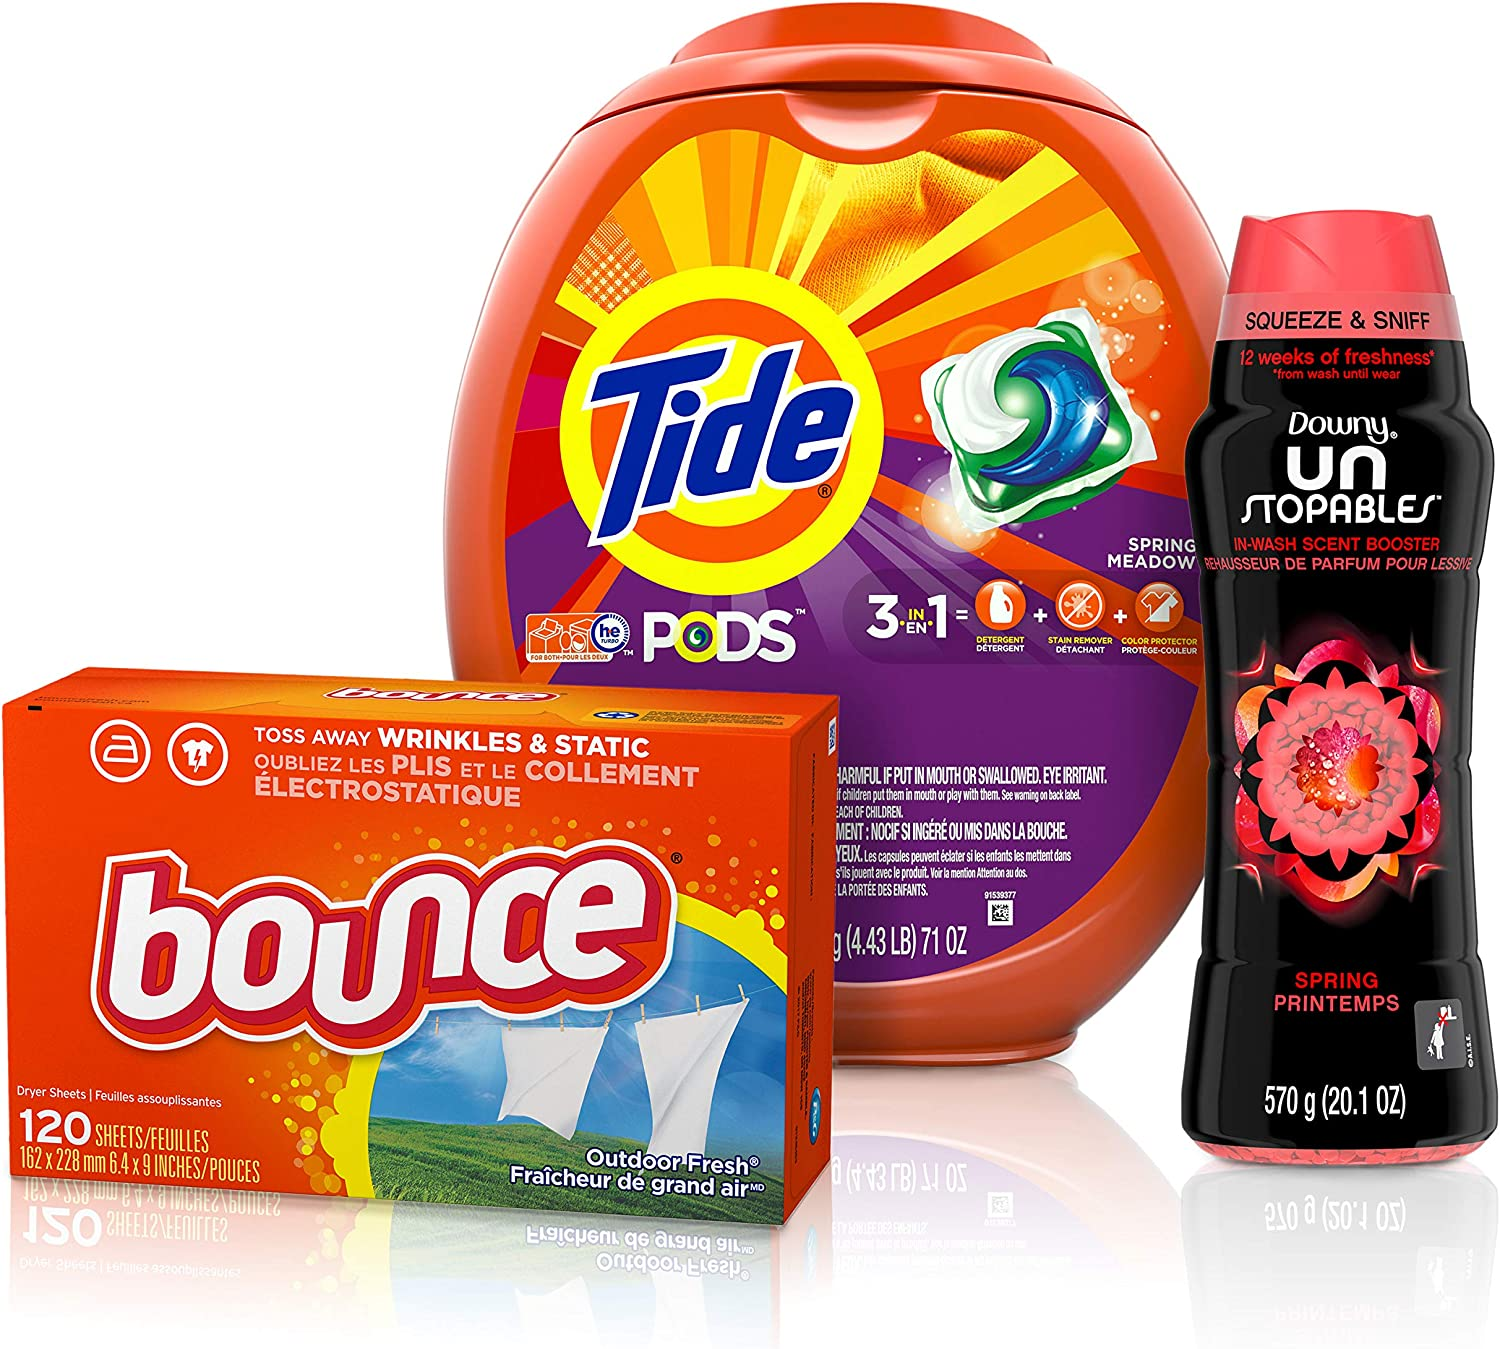 Tide PODS 3 in 1 HE Turbo 直営ストア with Detergent 出色 Laundry Unst Pacs Downy